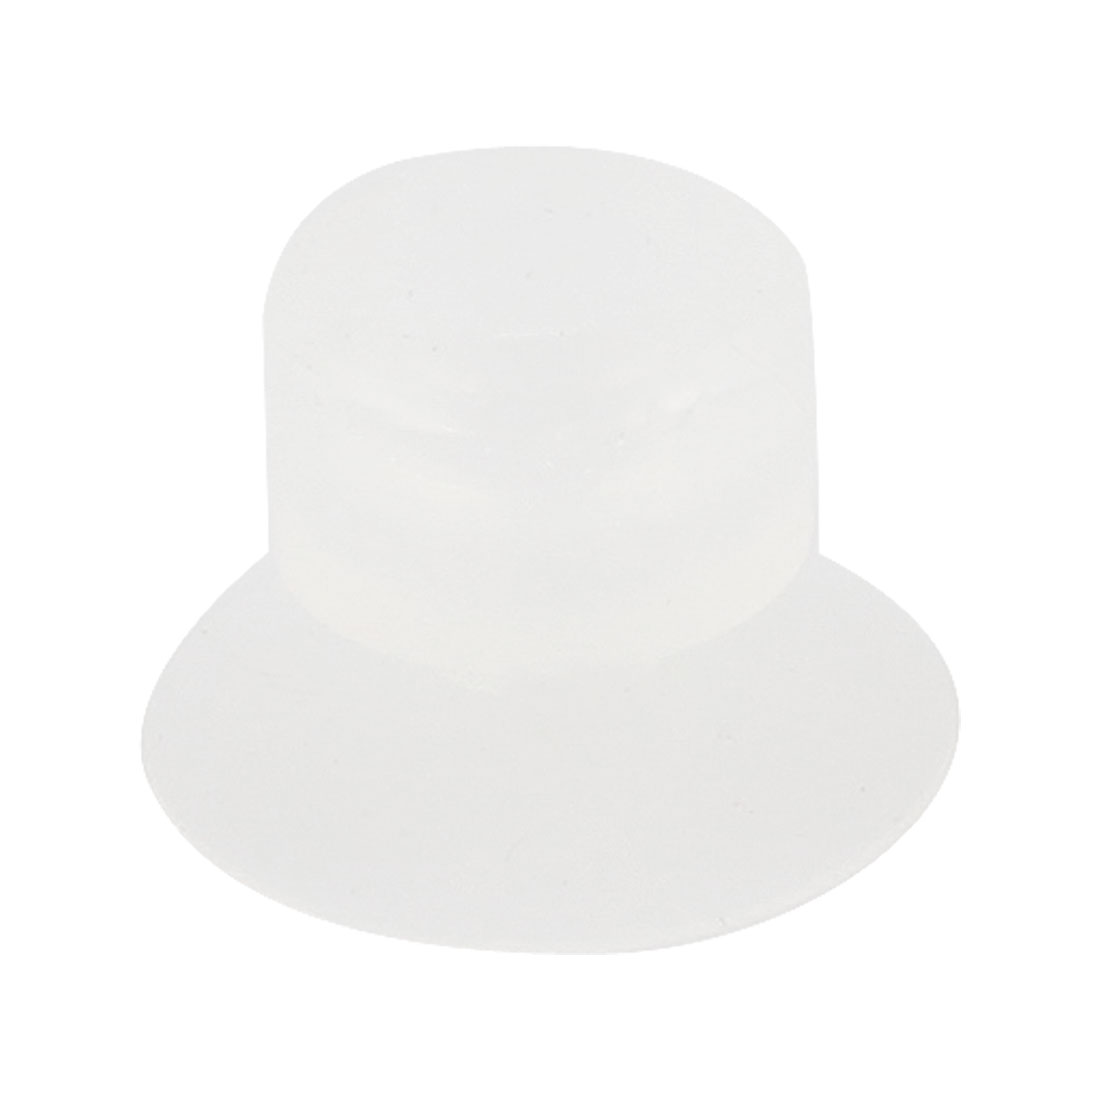 Vacuum Equipment Spare Part 15mm Dia Suction Cup Clear White